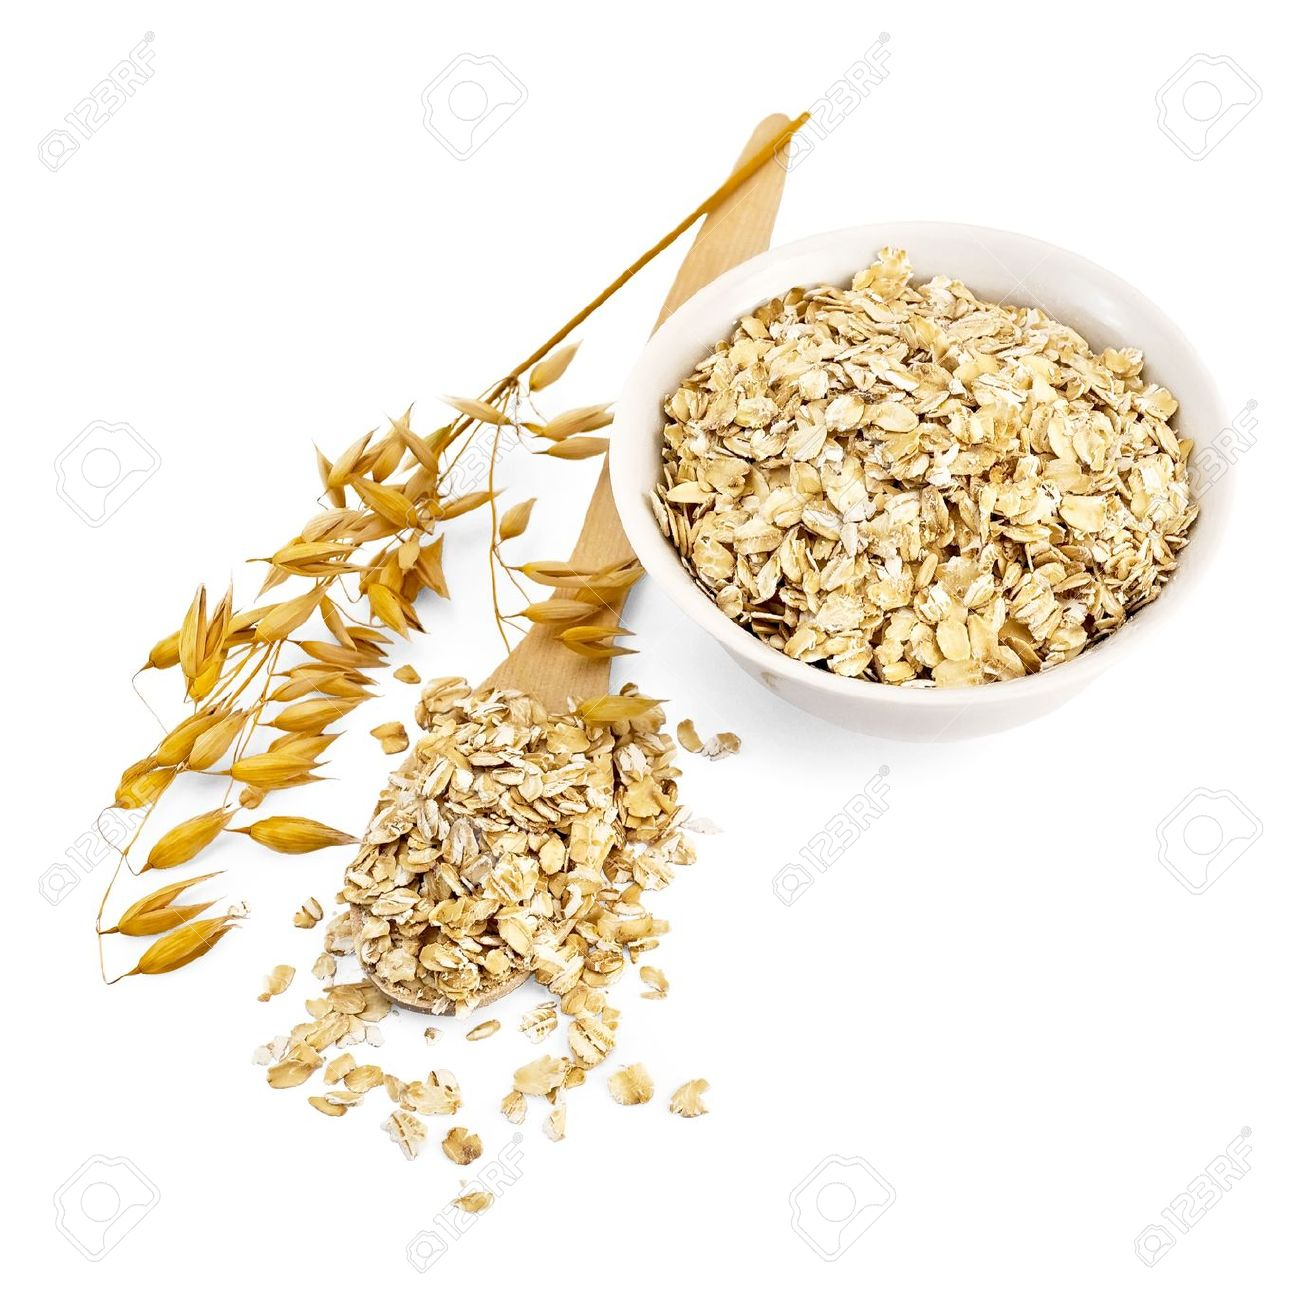 Rolled oats in a wooden spoon and a white porcelain bowl, oat stalks isolated on white background - 12323480